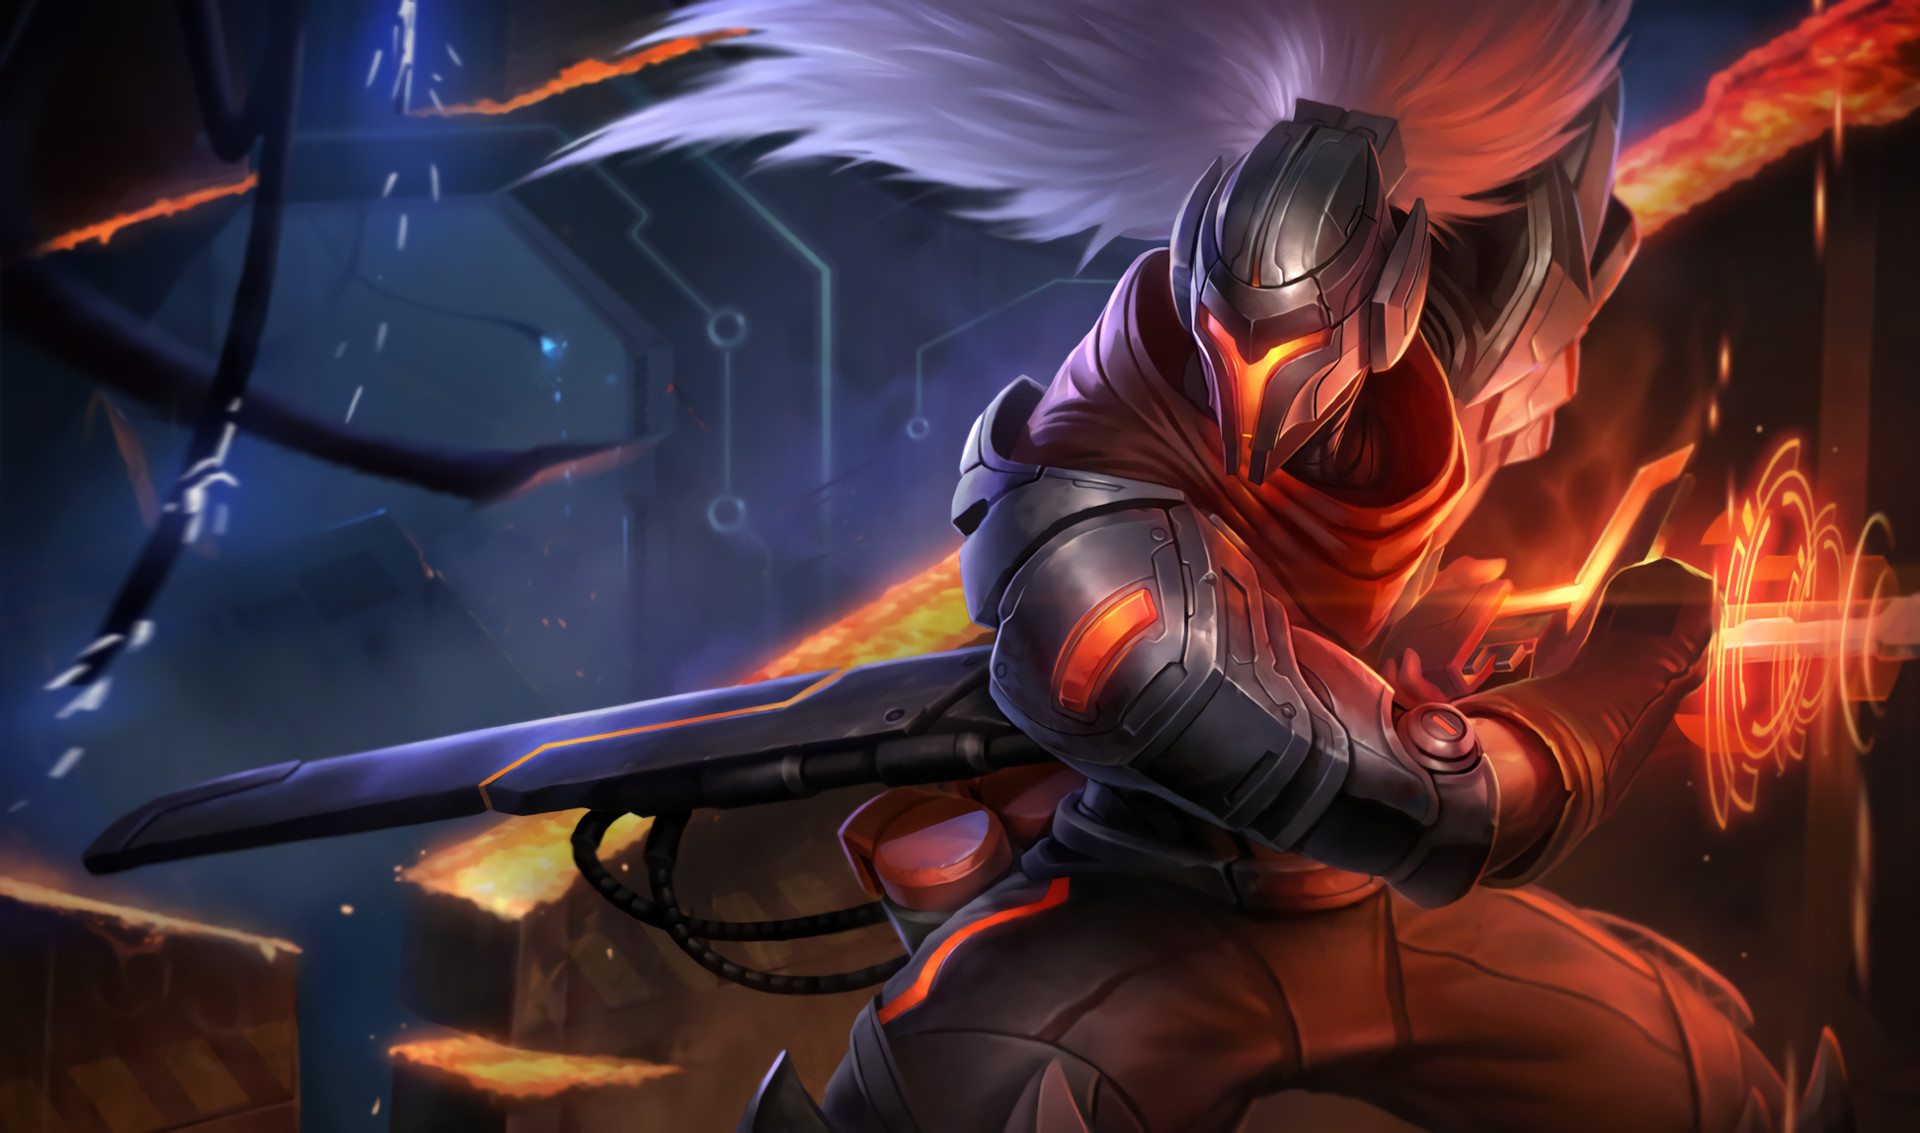 3263 League Of Legends HD Wallpapers | Backgrounds – Wallpaper Abyss